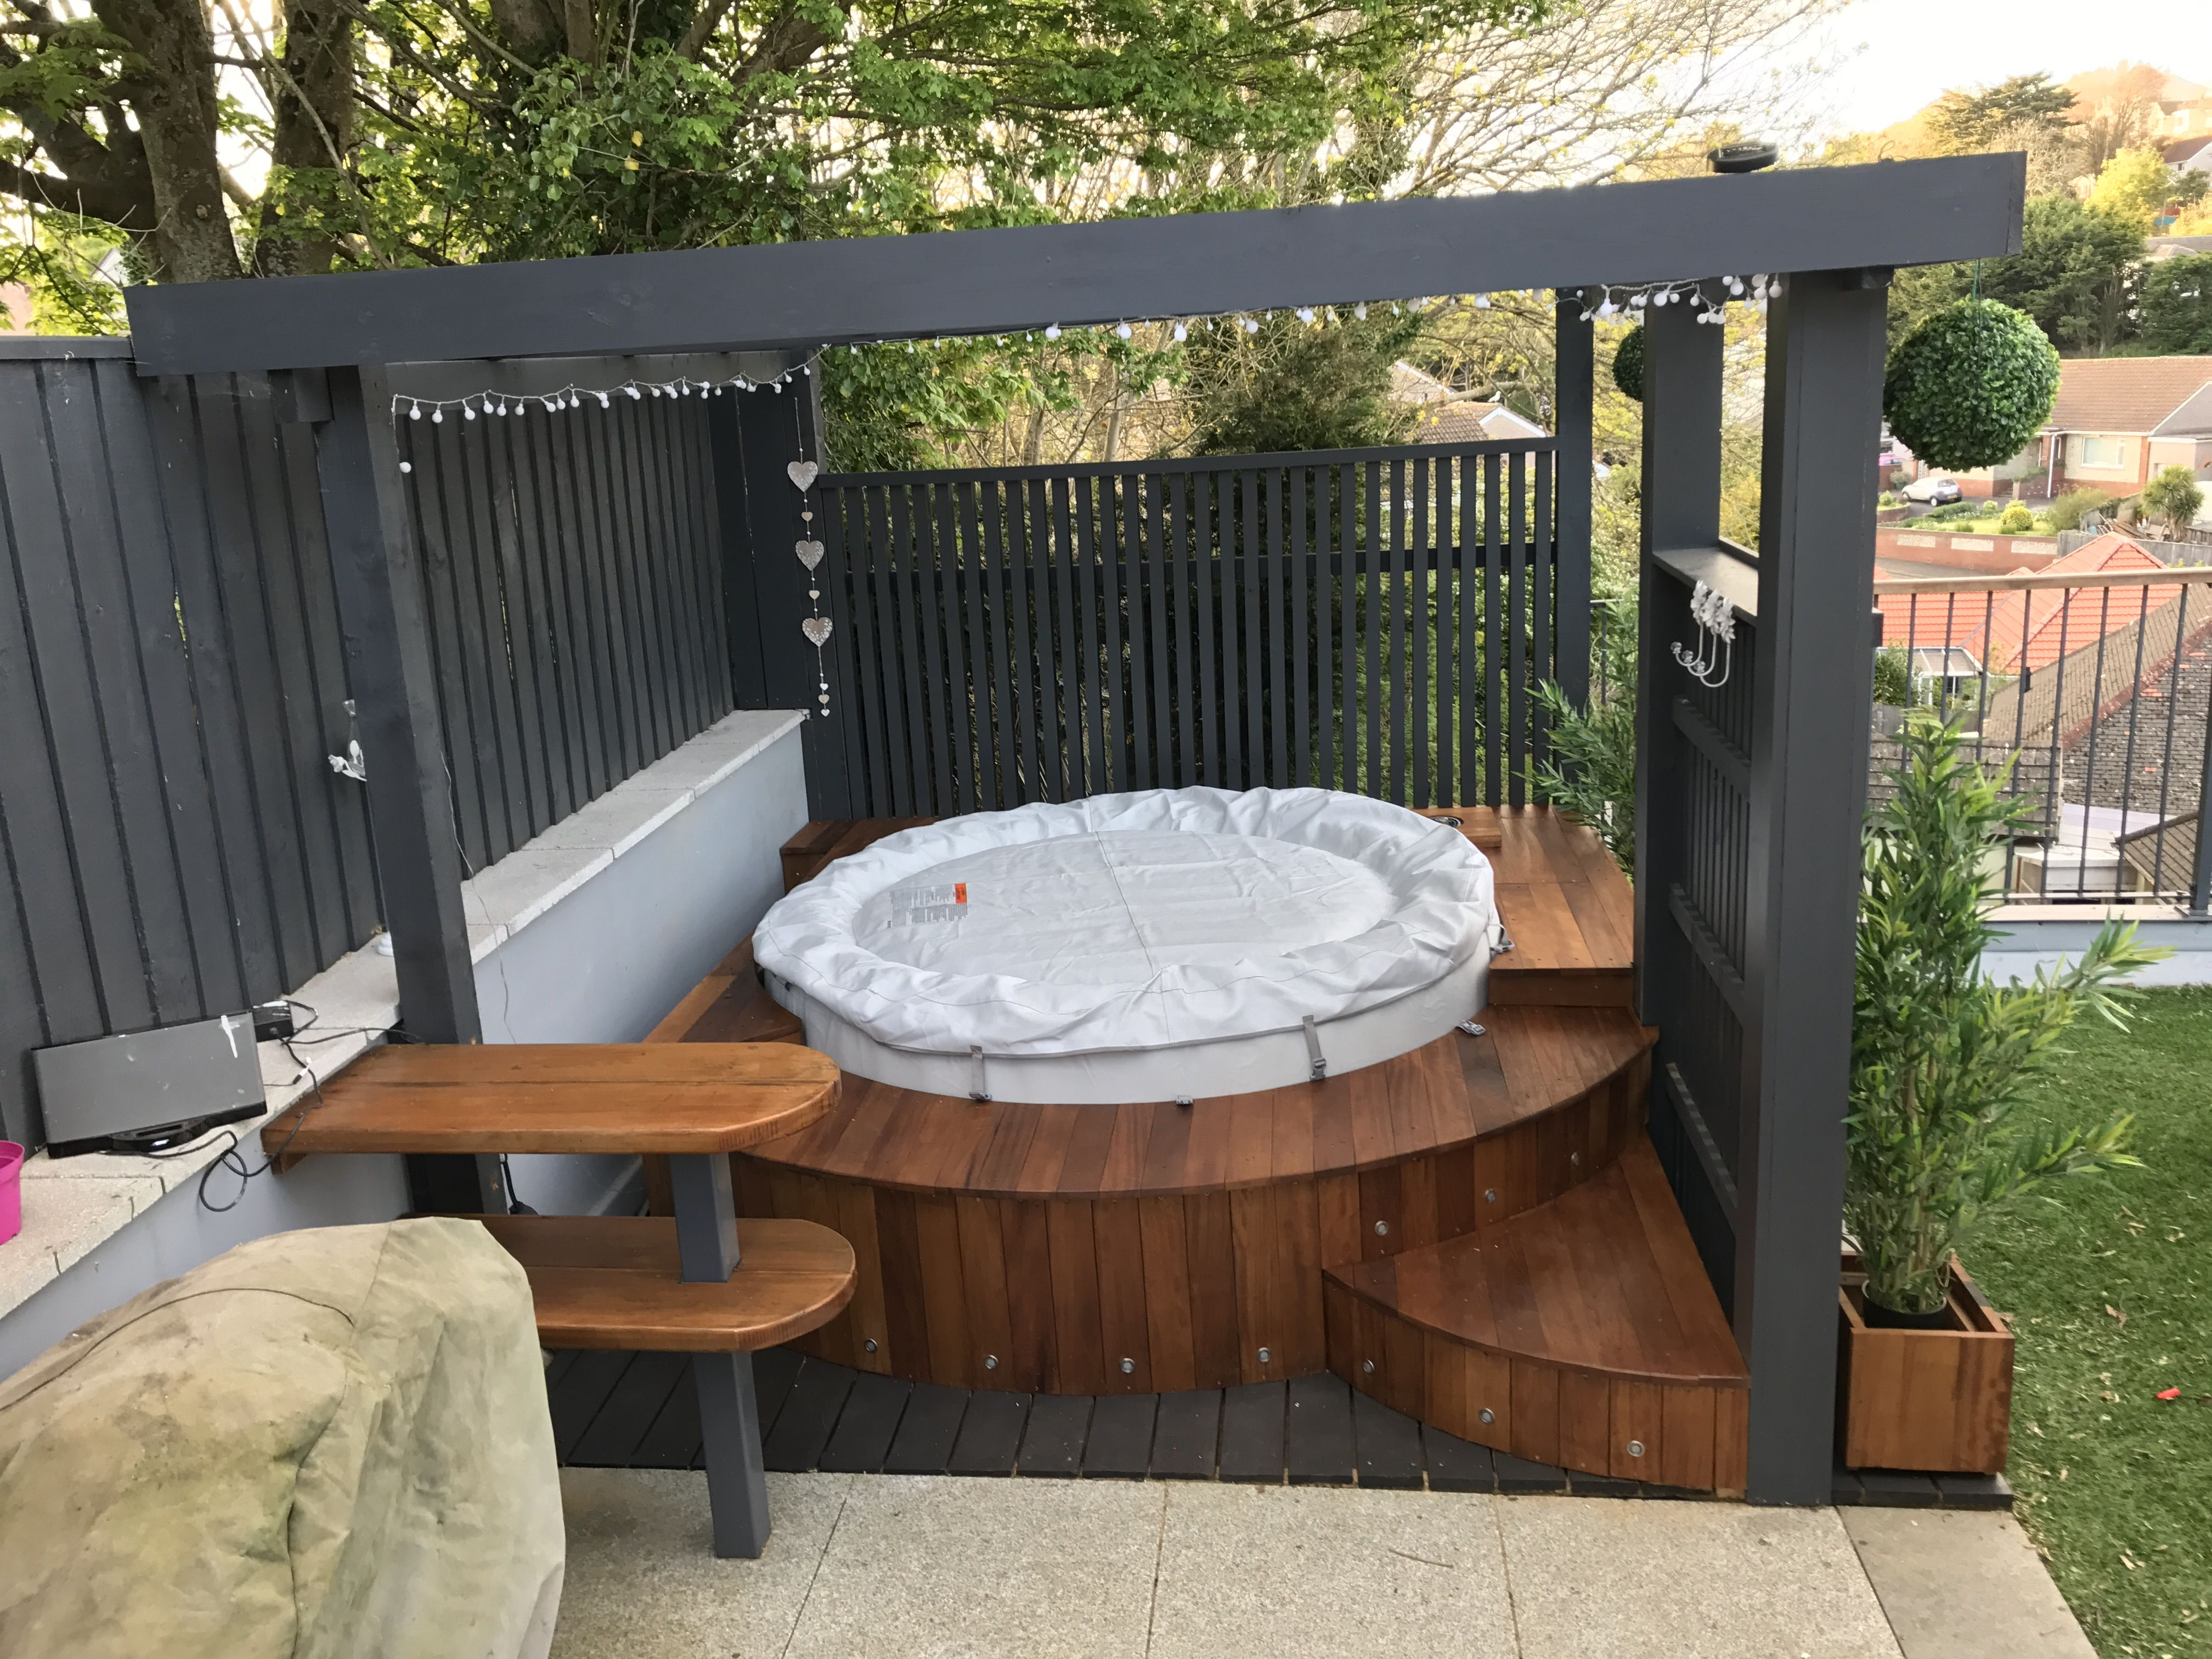 hot gazebo spa surround grey house lazy iroko tub modern pin pergola